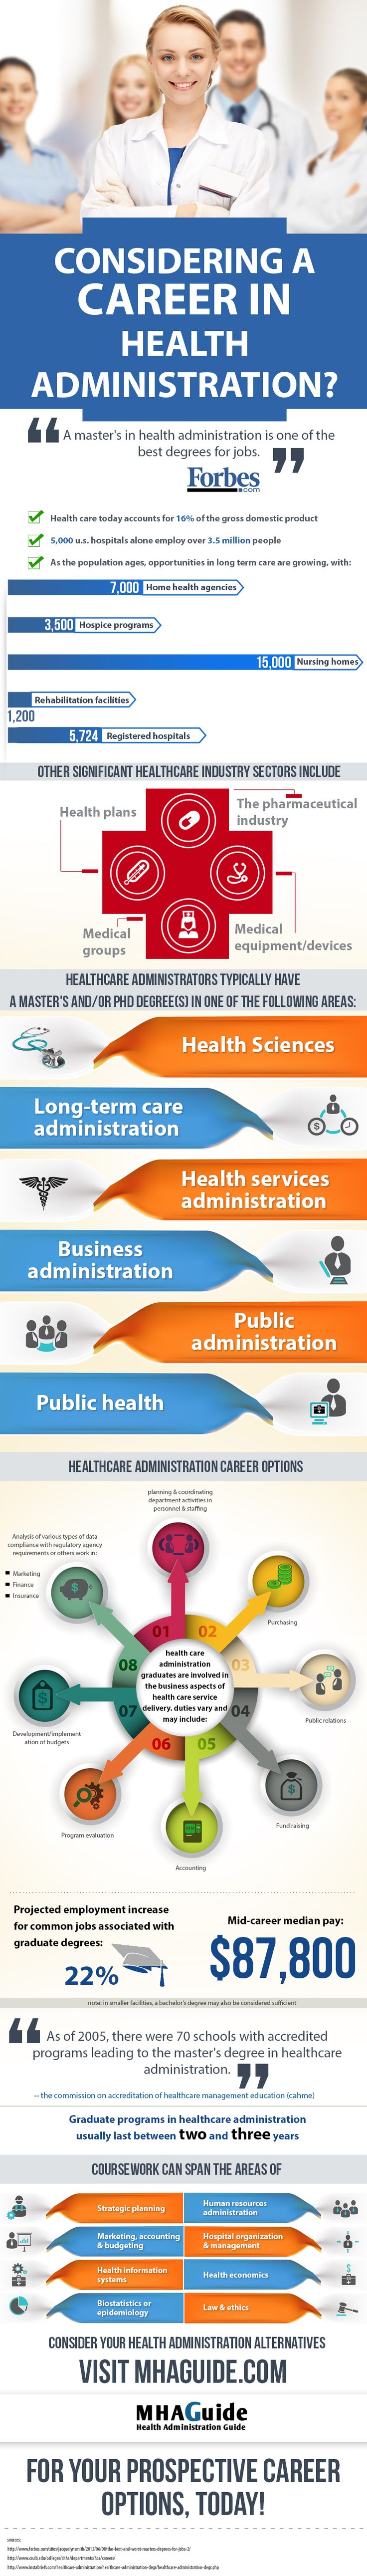 best ideas about healthcare administration you re on the right track to a rewarding career a master s degree in health administration is one of the best degrees for current jobs